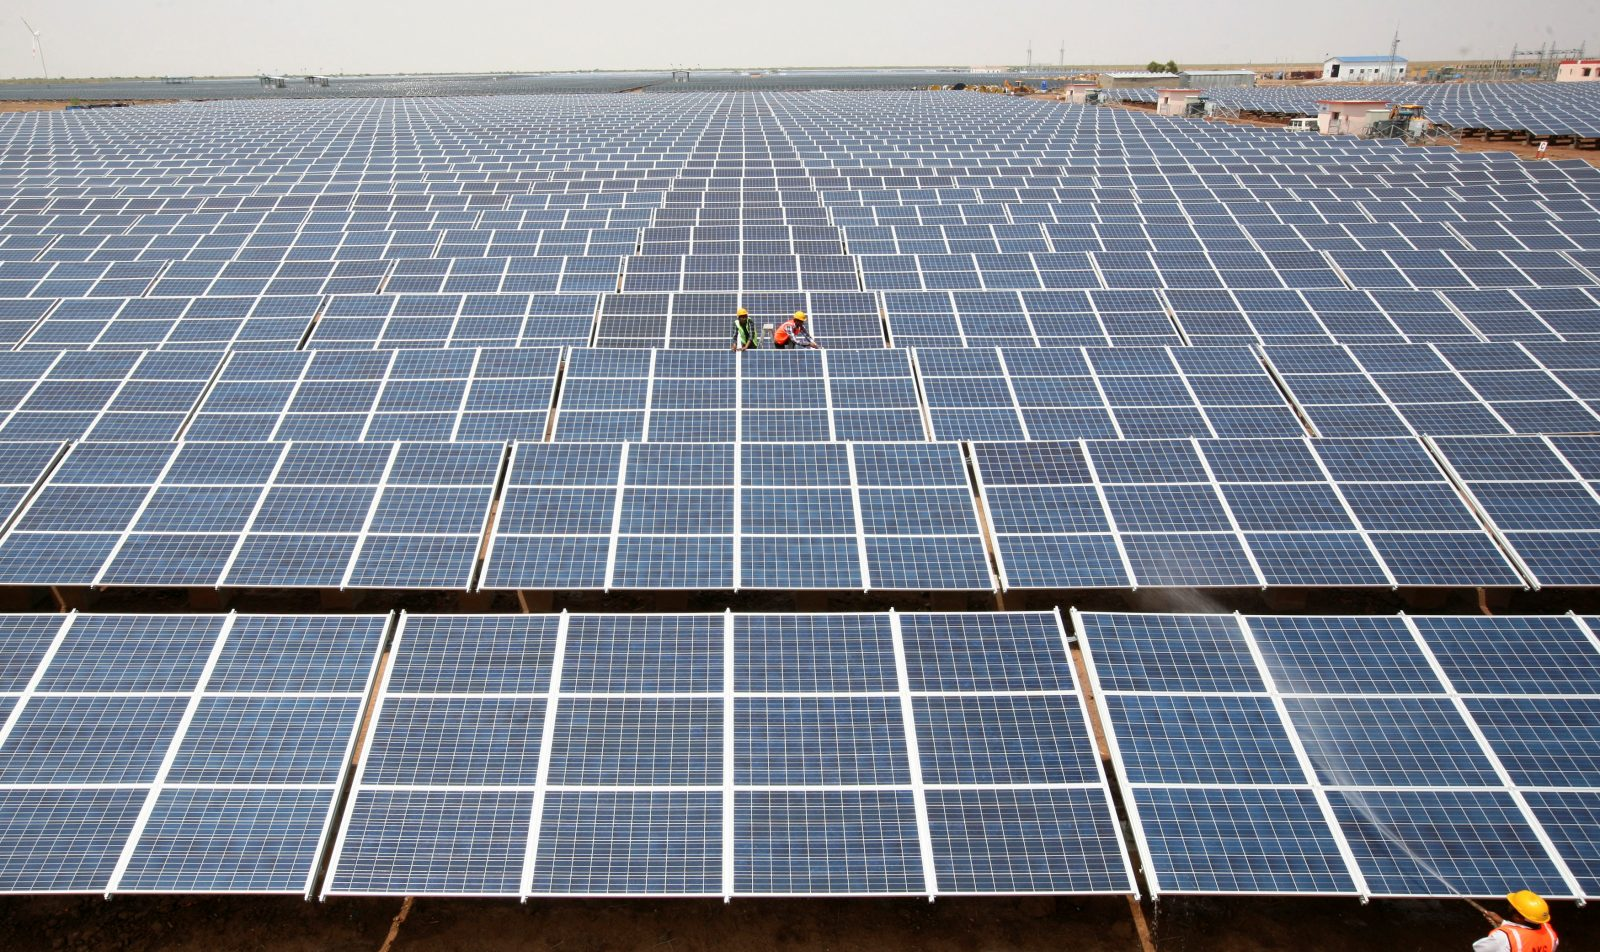 Workers install photovoltaic solar panels at the Gujarat solar park under construction in Charanka village in Patan district of the western Indian state of Gujarat, April 14, 2012. /File Photo - RTS14IF3